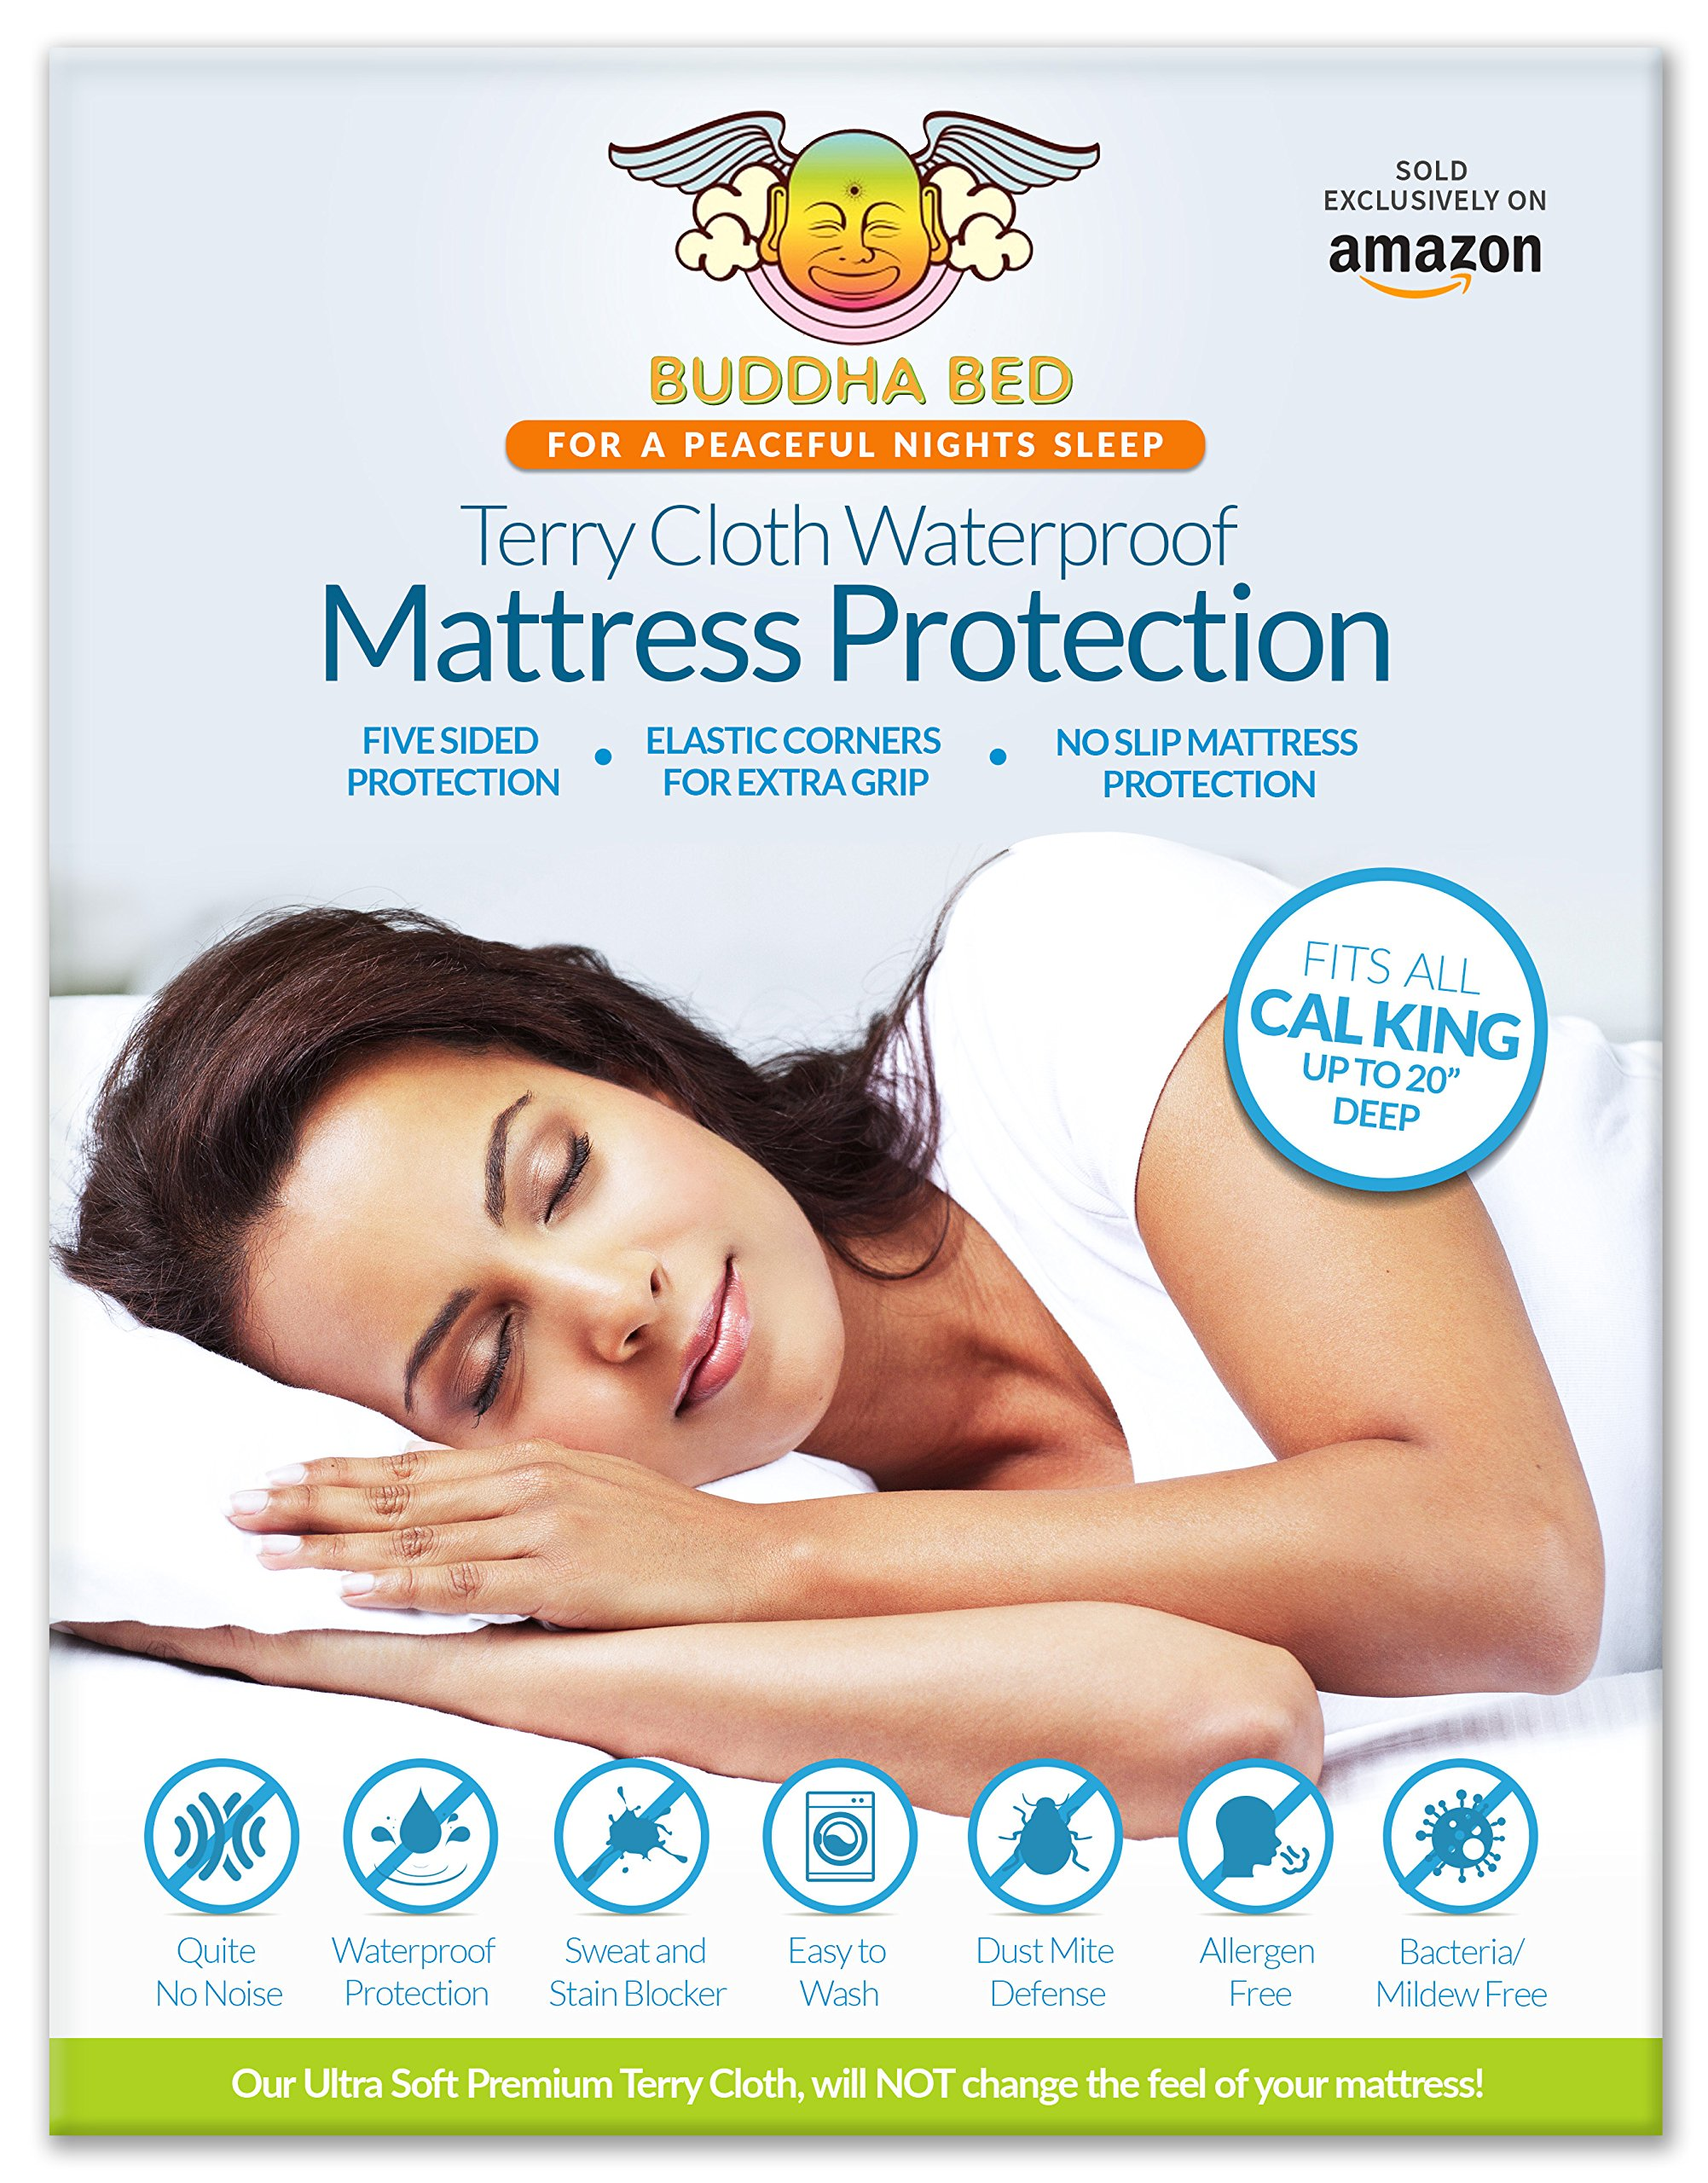 California King Mattress Encasement. 100% Waterpoof designed to block sweat, stains, urine, and accidents. Bleachable, Easy to Wash. Installs like a fitted sheet and fits up to 20 Inches Deep.